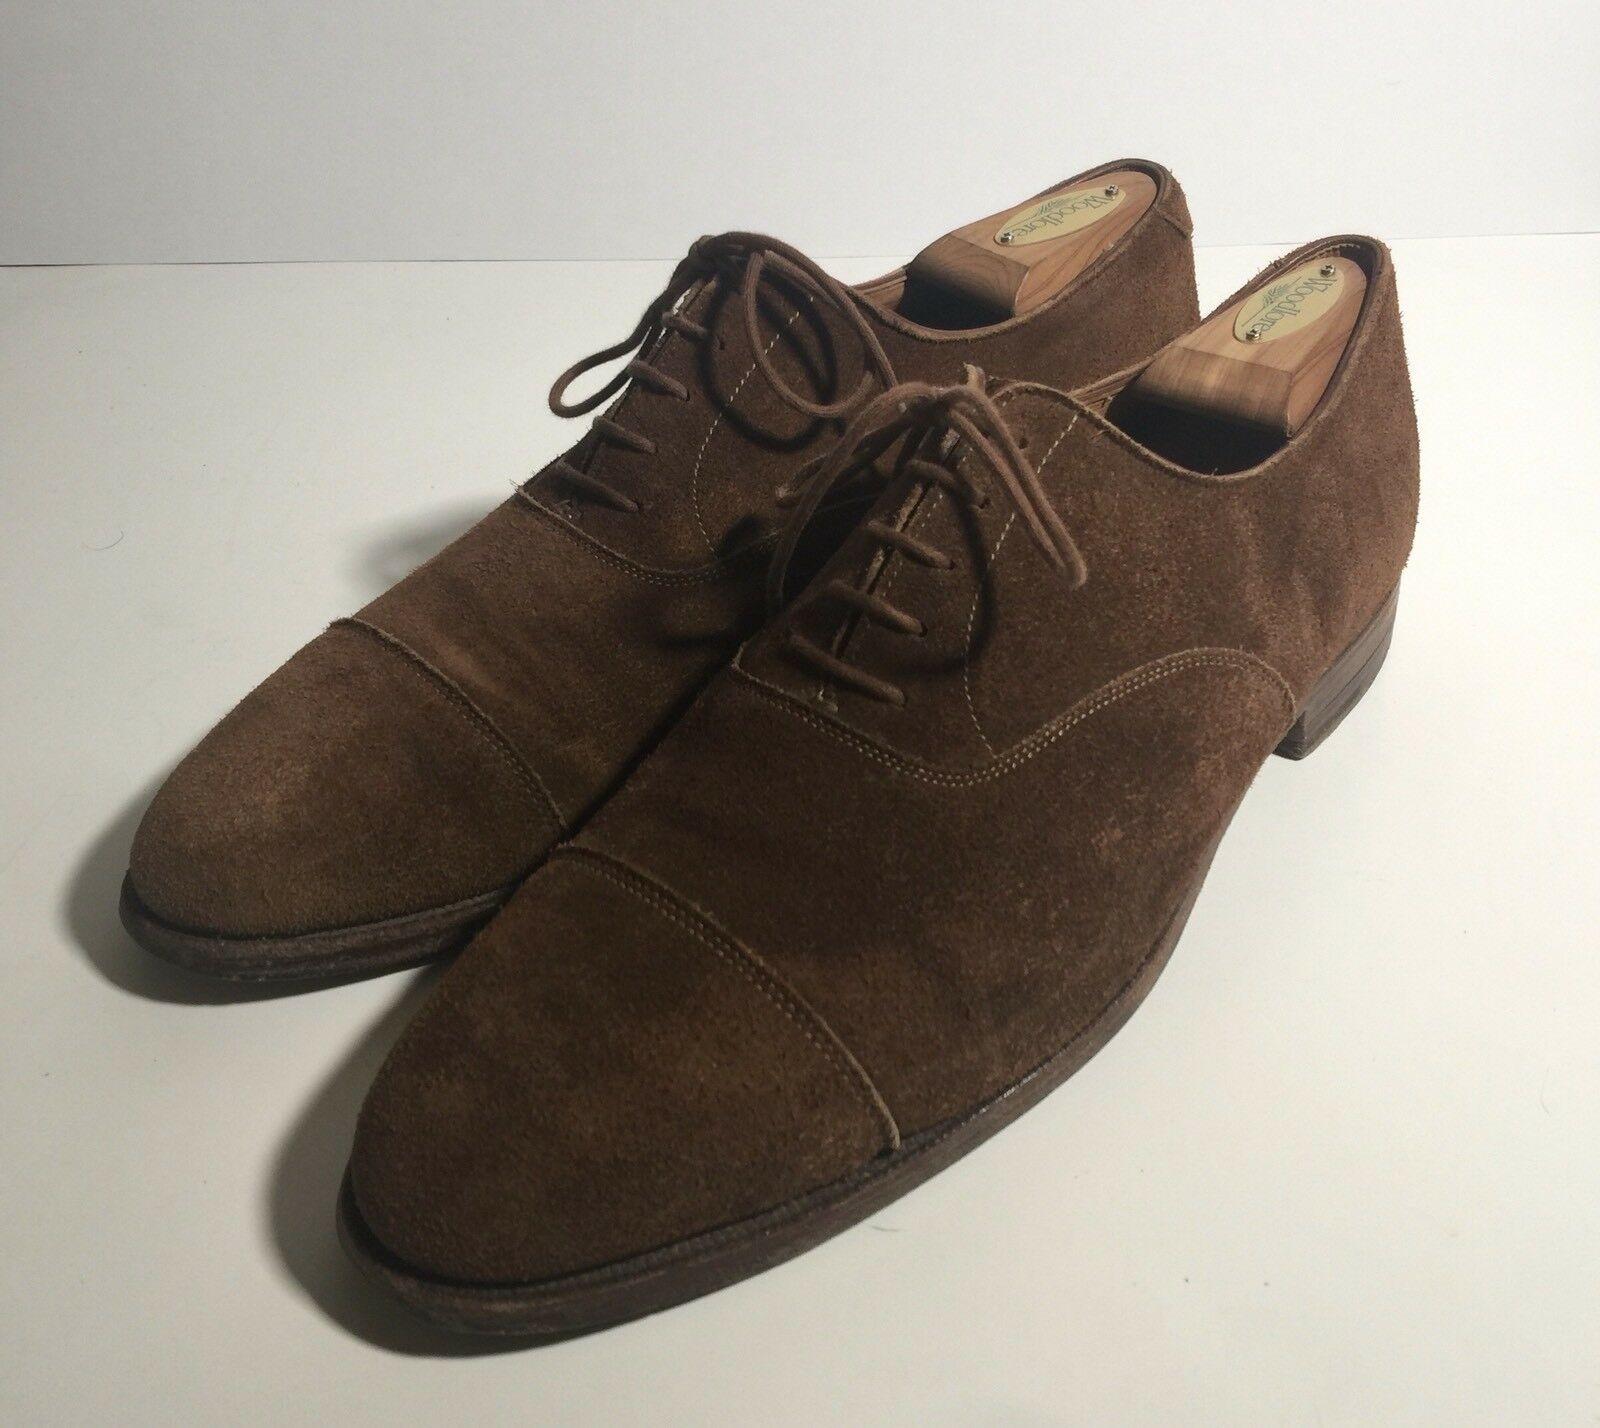 Crockett & & Crockett Jones Polo marrone Suede Cap Toe Oxford Scarpe Uomo 10.5 Uk / 11.5 us 0bc7de